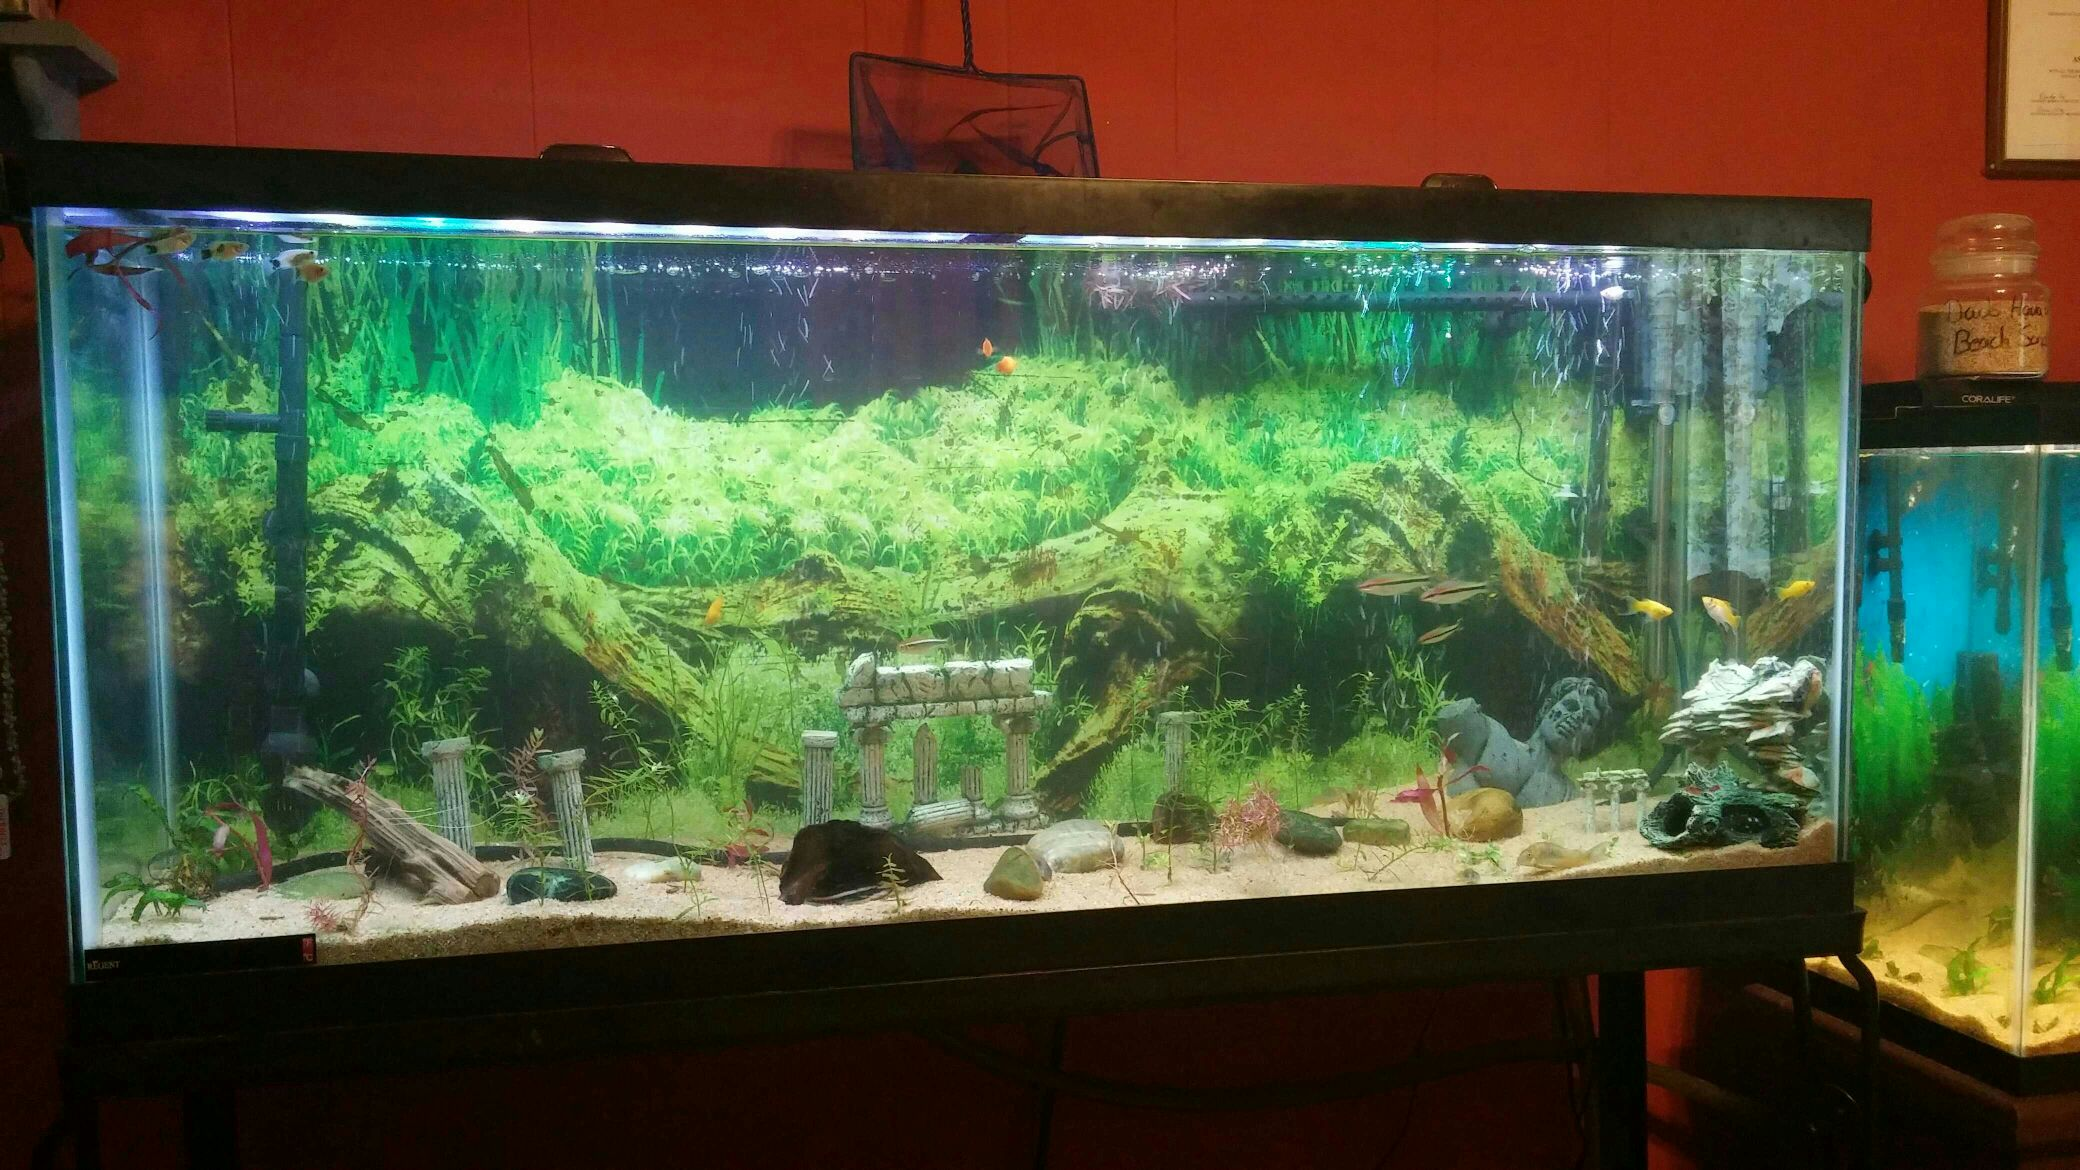 So in closing Ladies and Gents where you buy your next cheap LED light from is all up to you but for a CHEAP planted tank LED light with good PAR ... & 3 low cost LED light review - Page 6 - The Planted Tank Forum azcodes.com